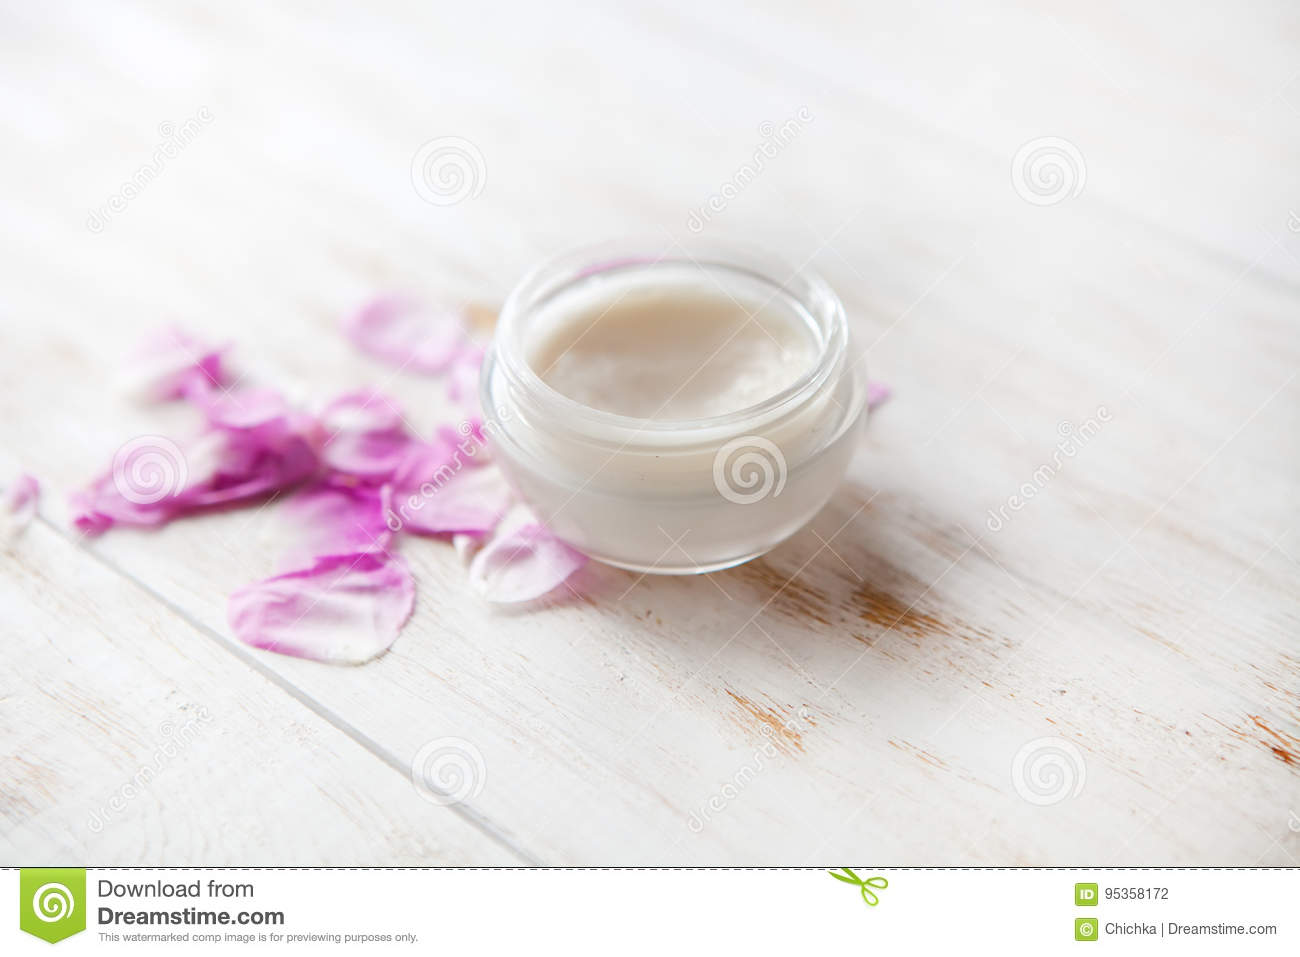 Tired skin cosmetic cream facial skincare medical treatment therapy .face cream with rose petals on white background